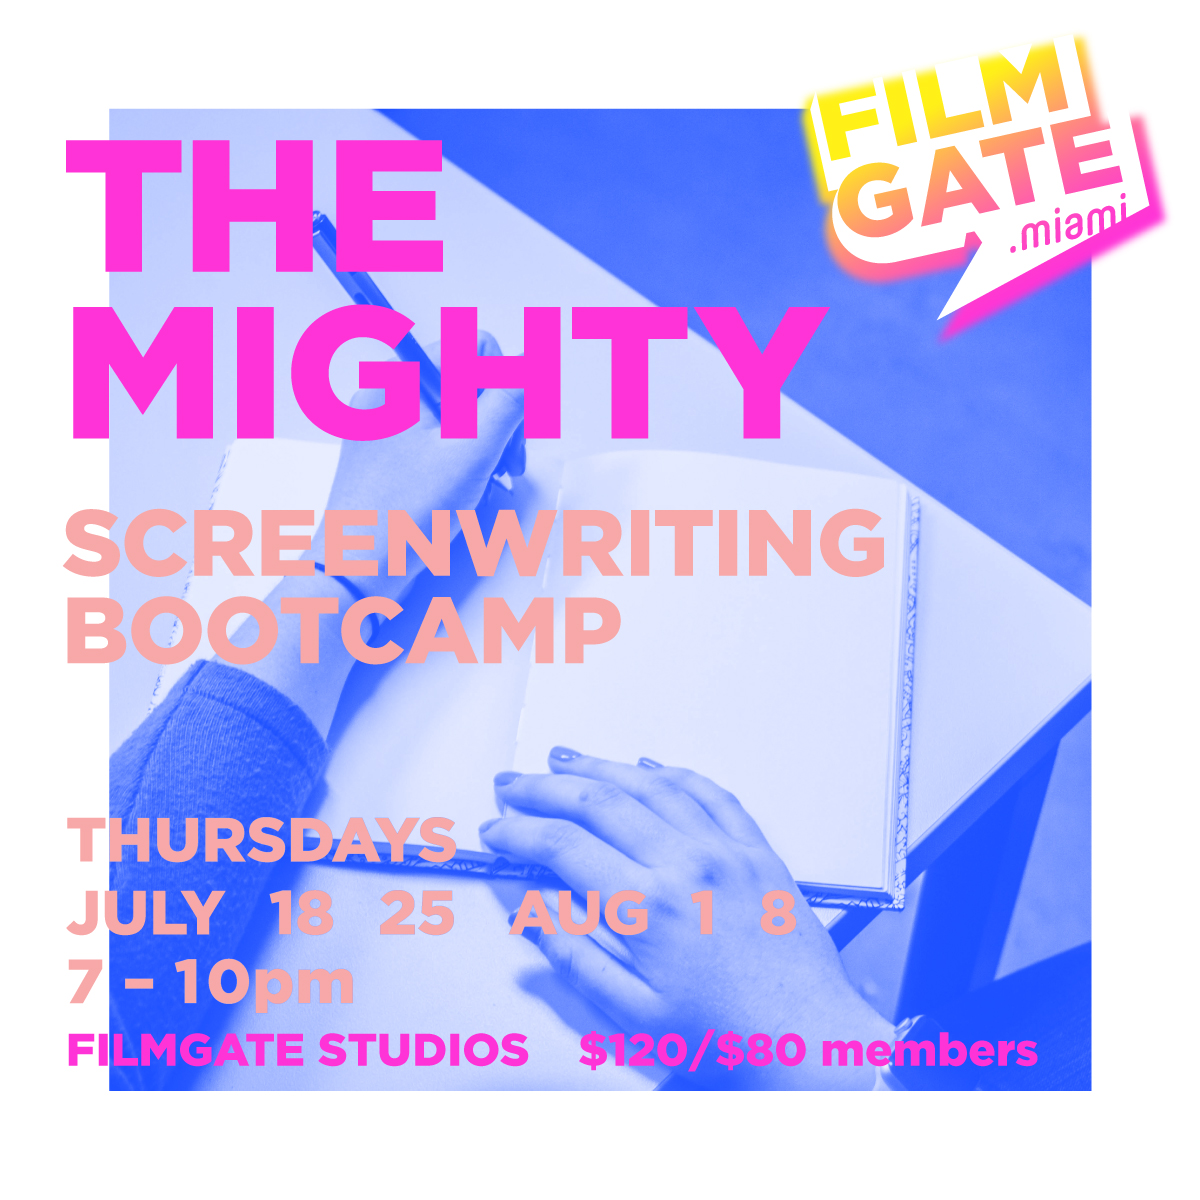 FG_SCREENWRITING-BOOTCAMP_07-08-2019.jpg